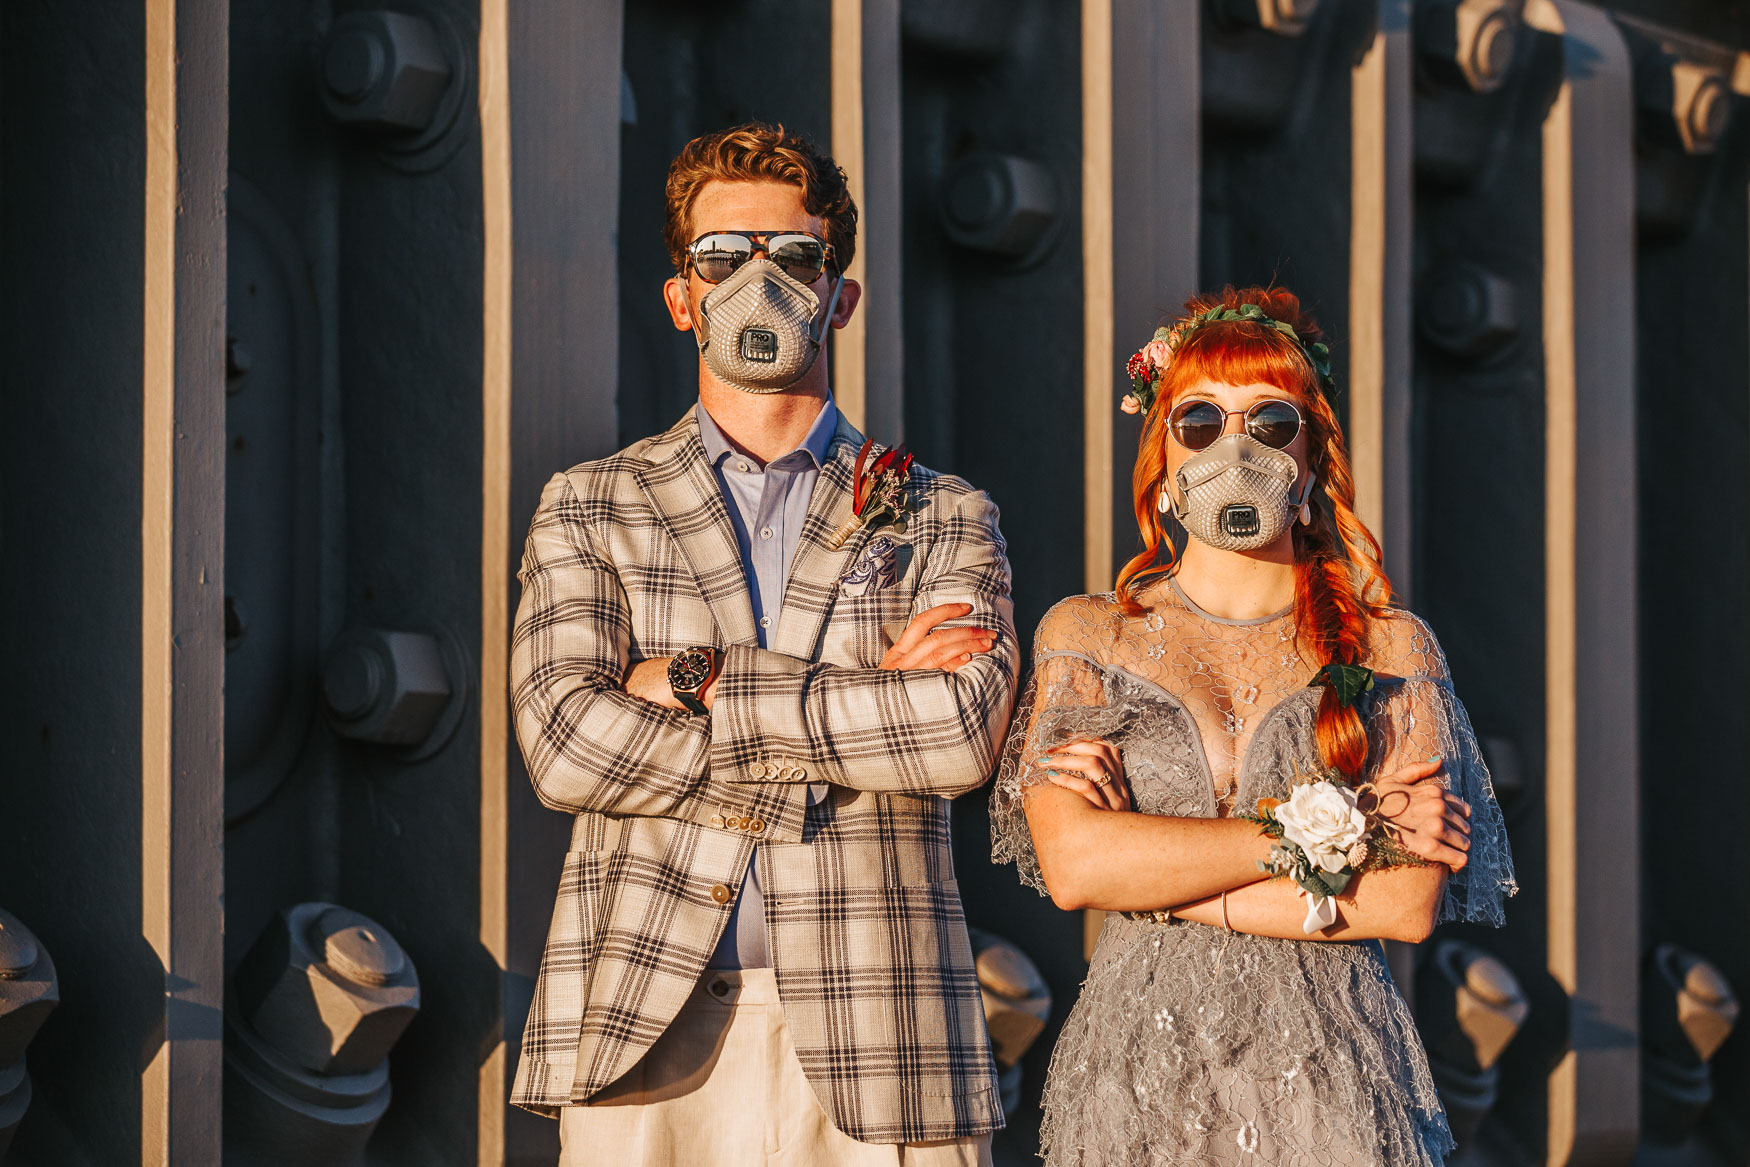 A married couple wear face masks at their elopement wedding.g